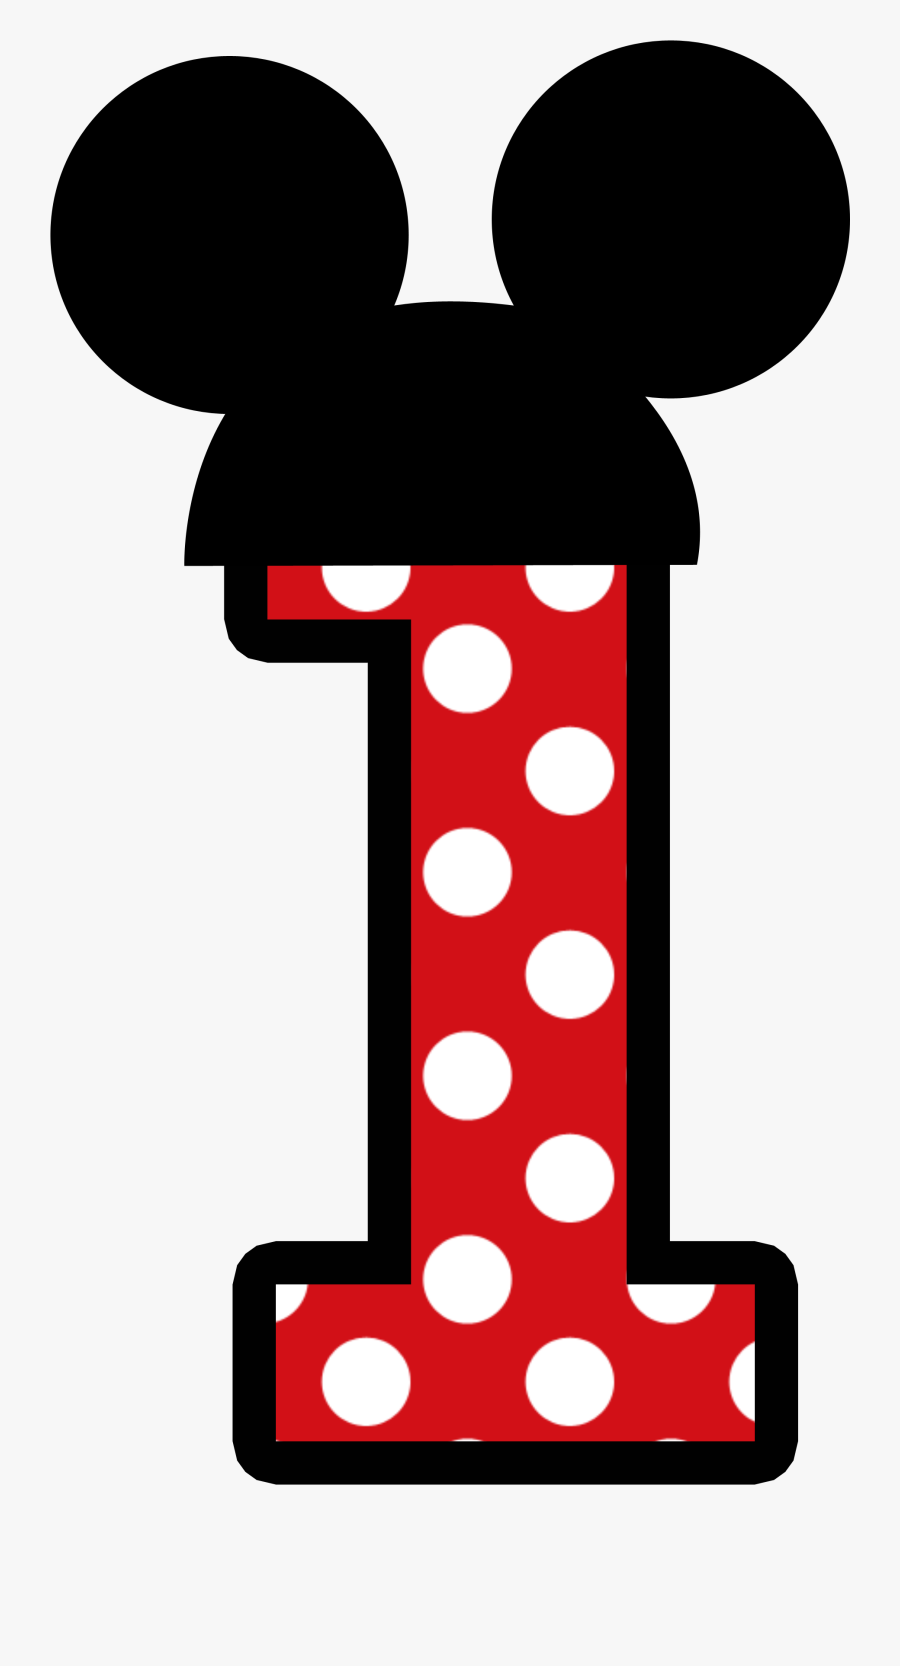 1 Clipart Minnie Mouse - Mickey Mouse Number Png, Transparent Clipart